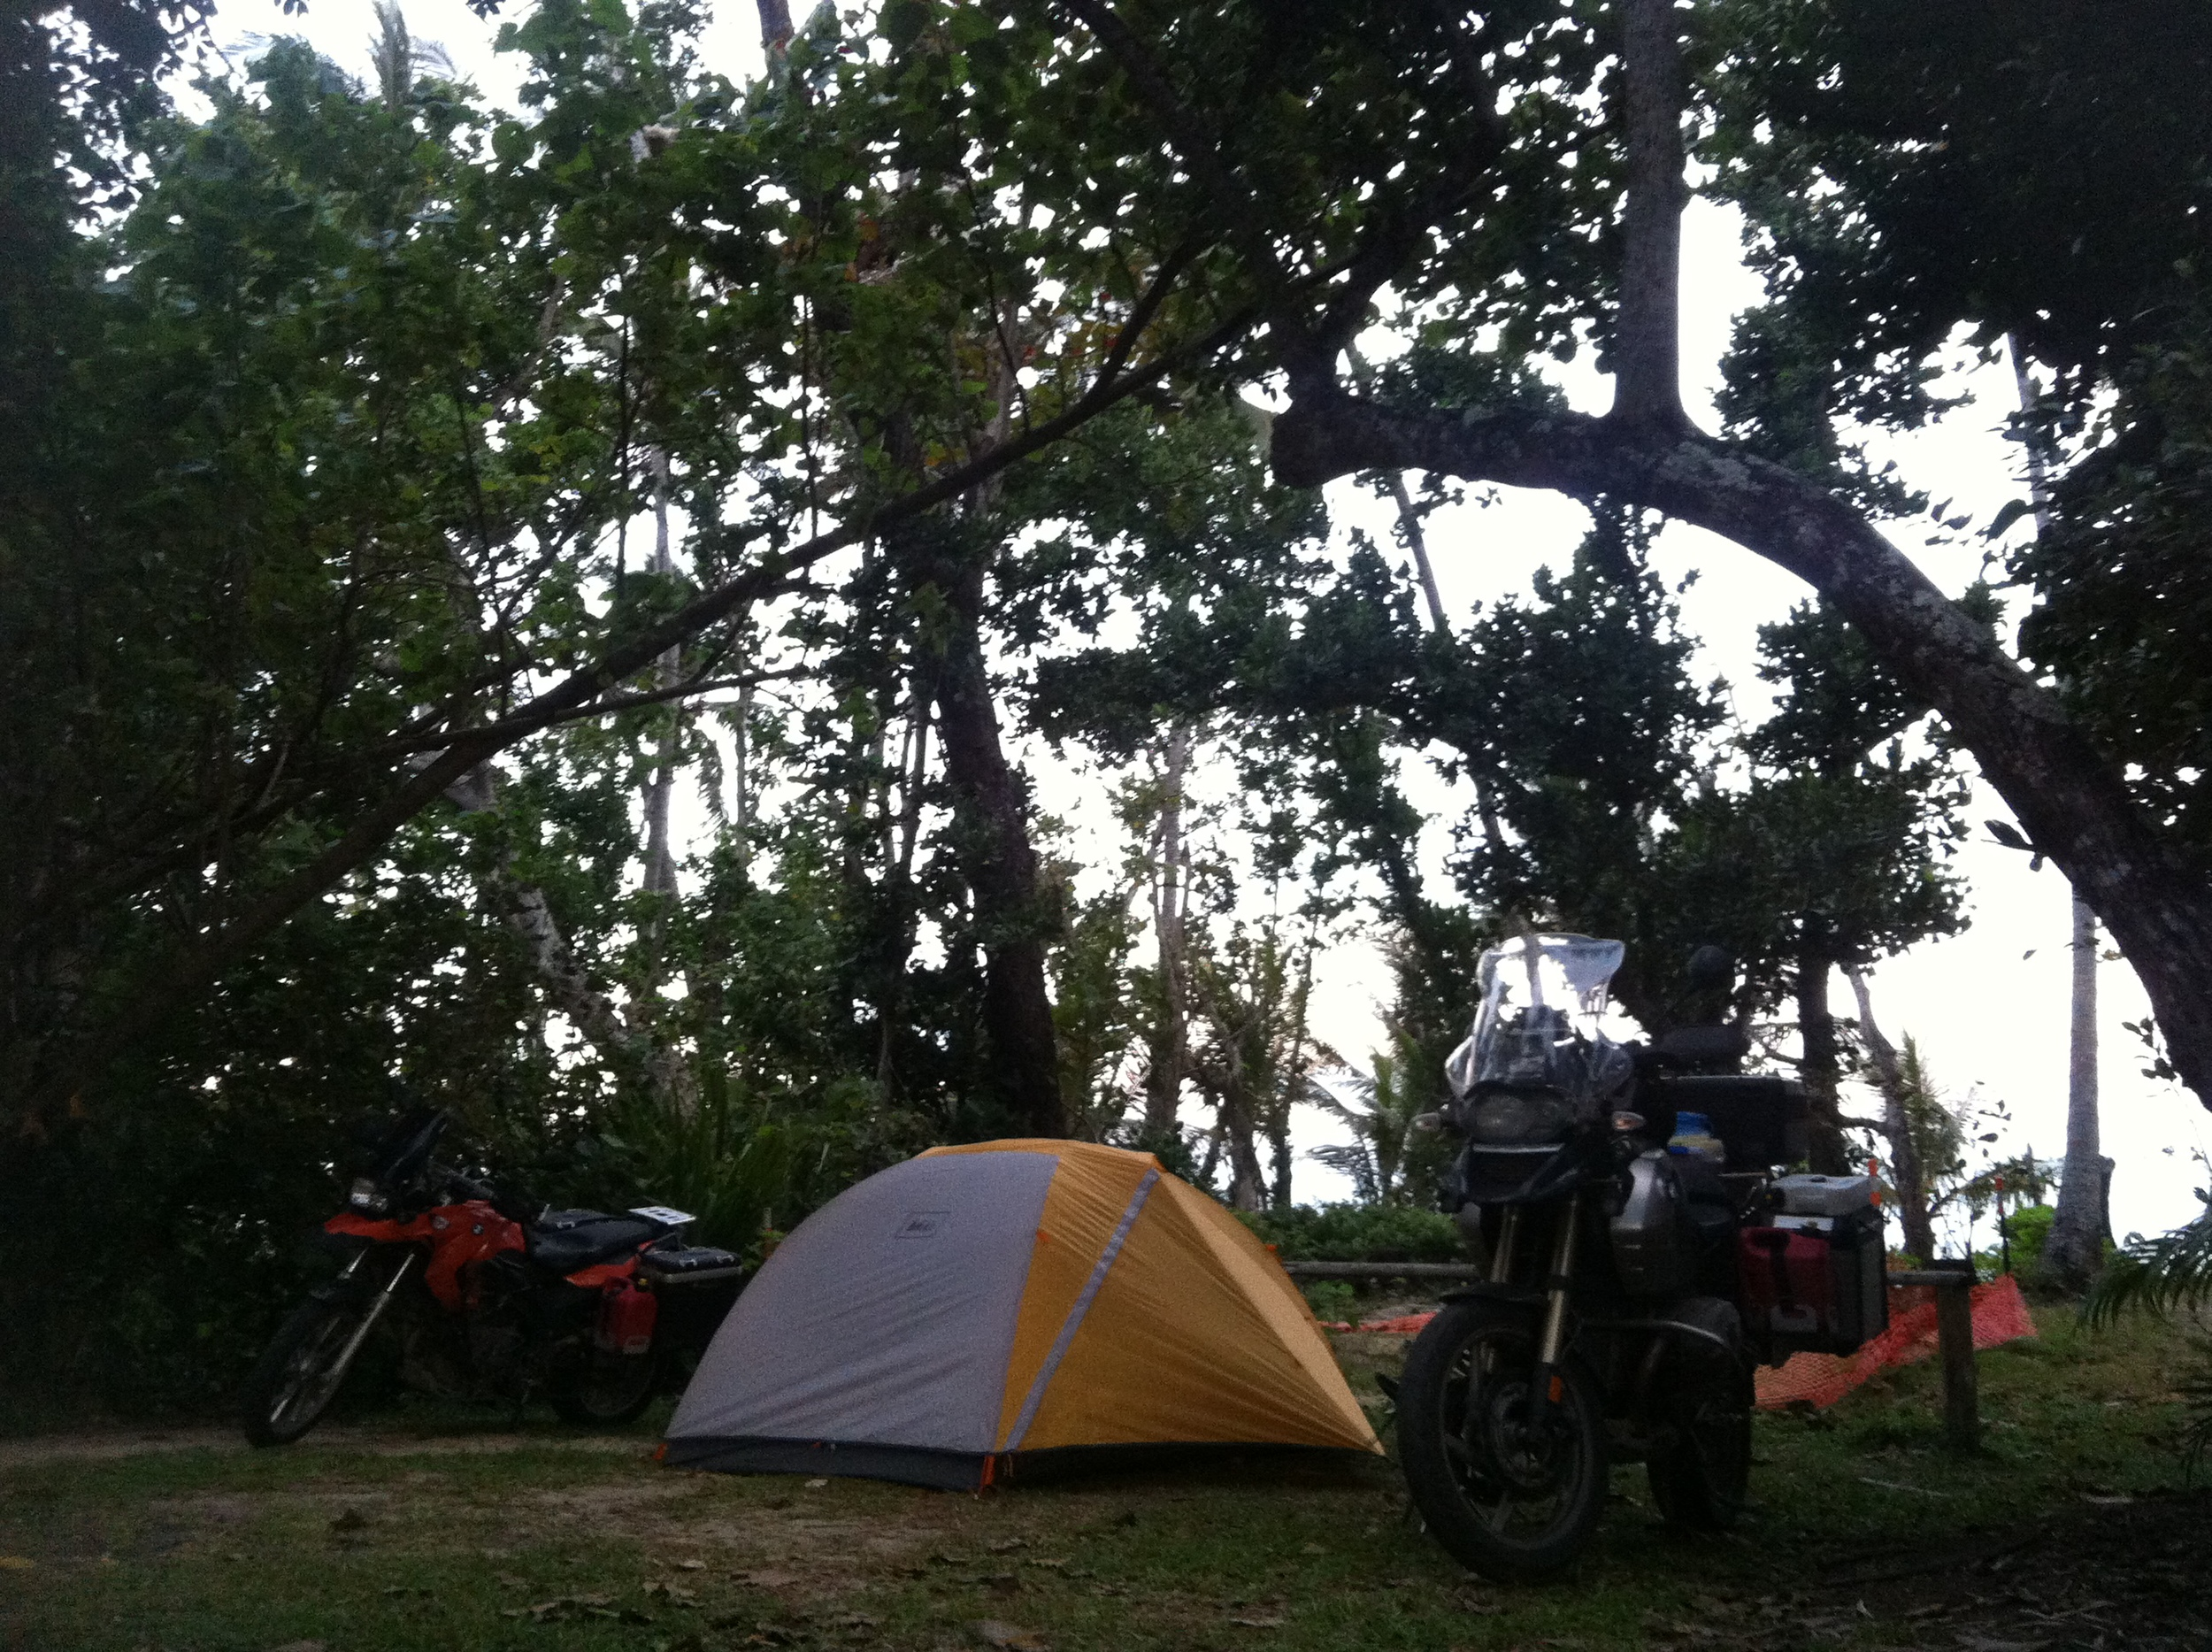 Our campsite at Mission Beach